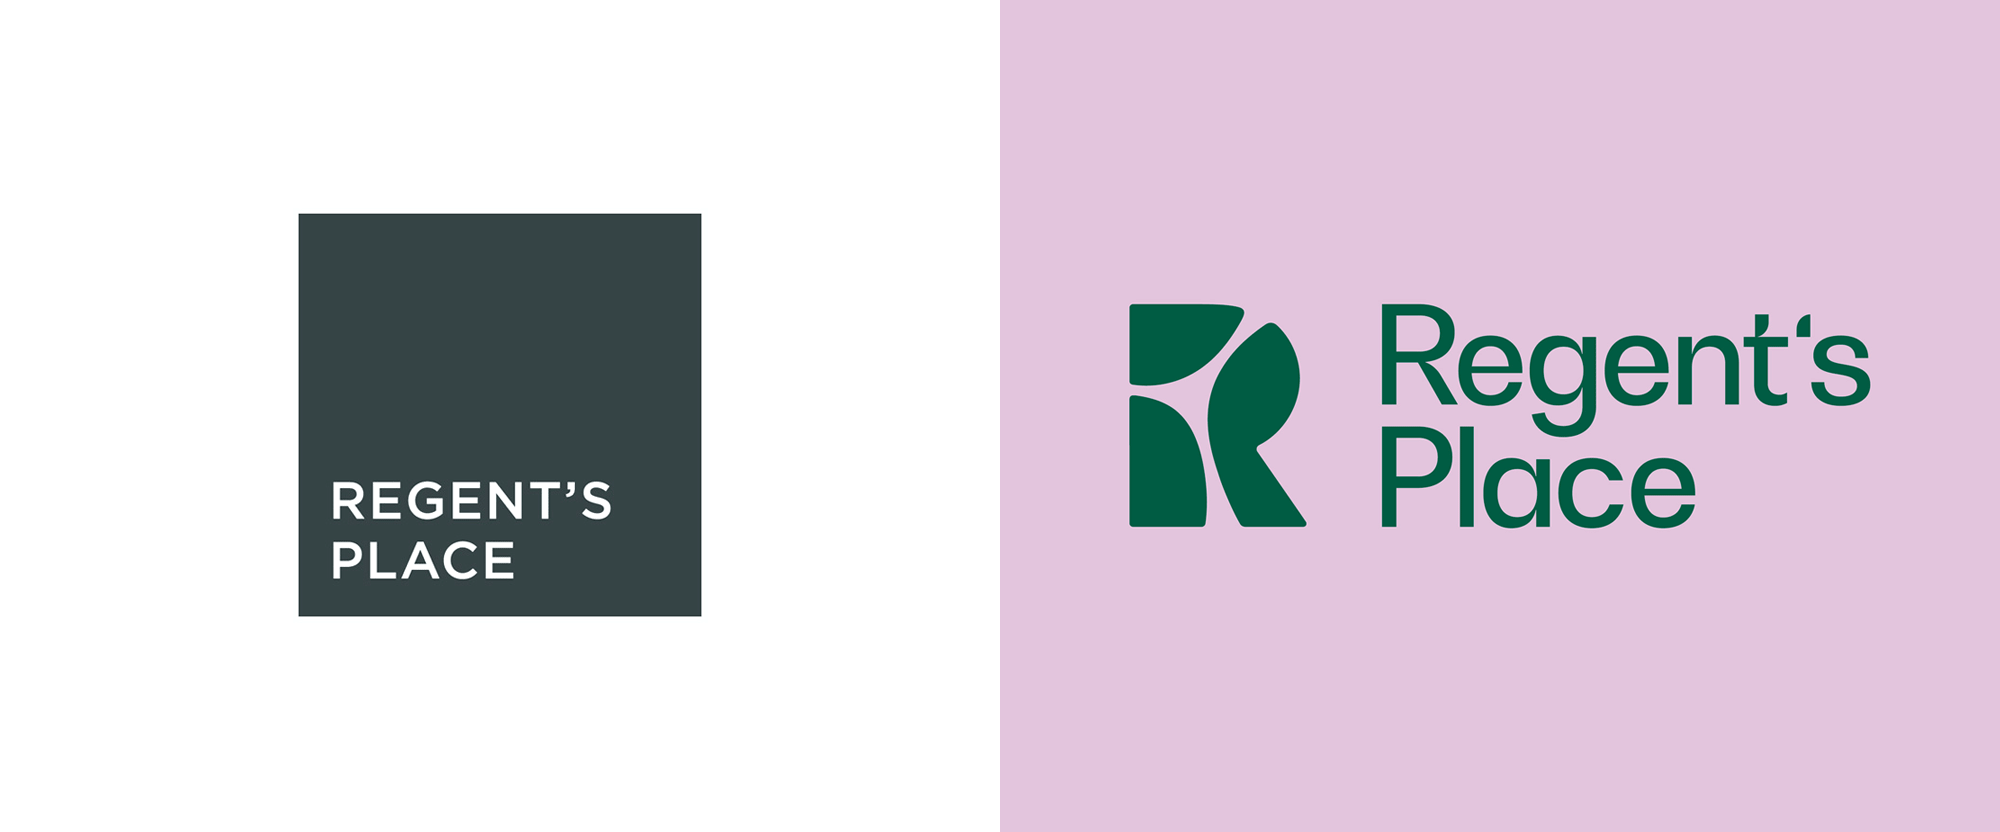 New Logo and Identity for Regent's Place by DixonBaxi